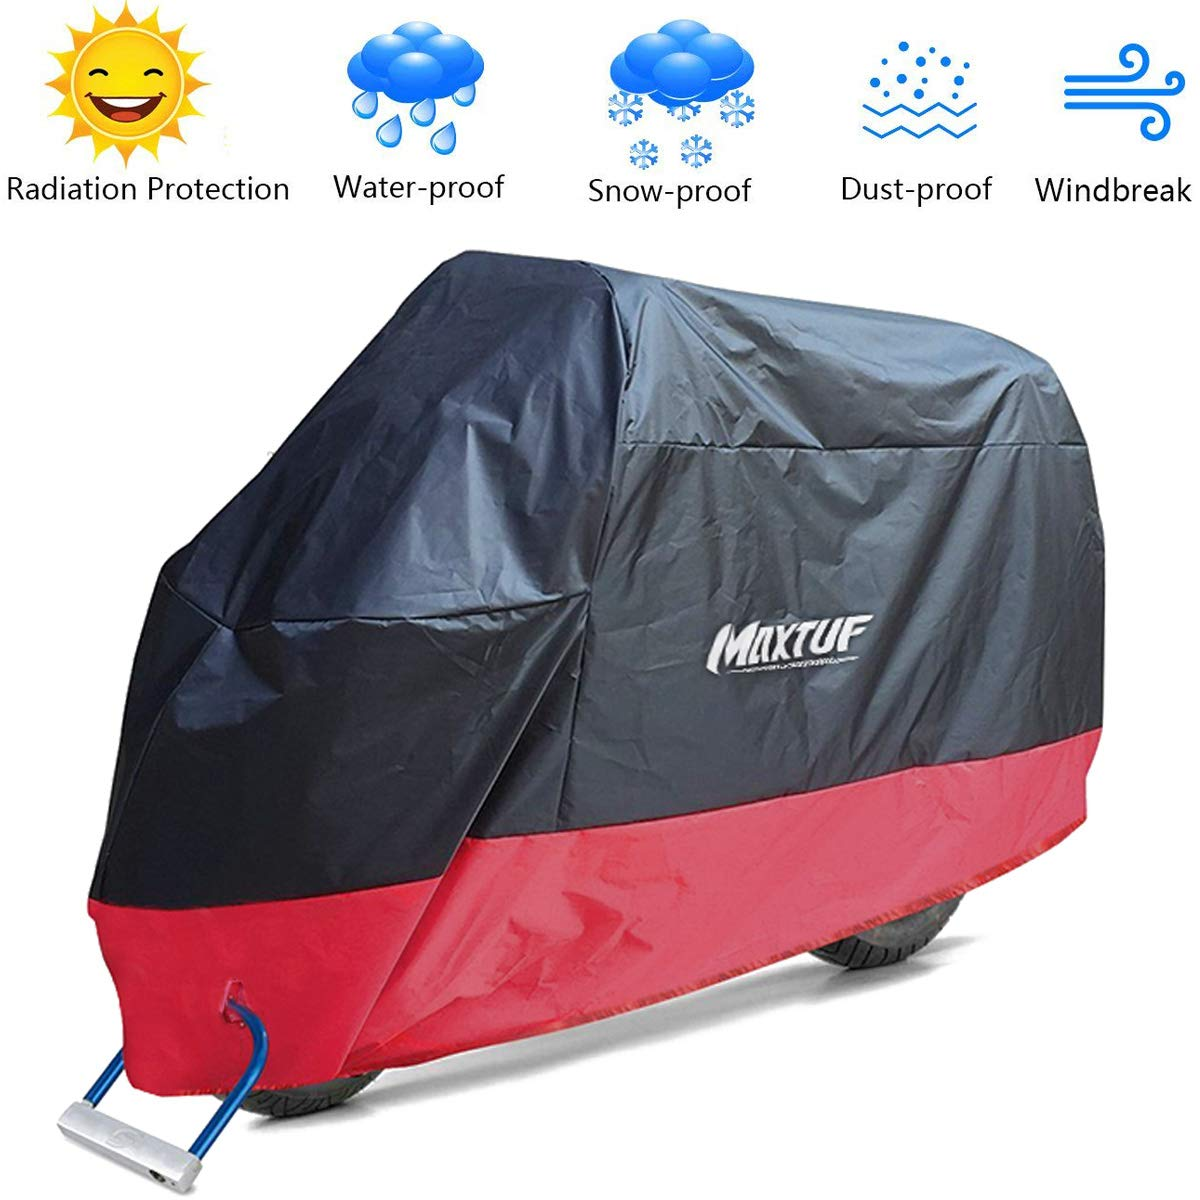 MAXTUF Motorcycle Cover, Oxford Fabric 220x95x110CM Waterproof Breathable Motorbike Cover Dust Rain Sun Protection with Lock Holes for Norton, BSA, TRIUMPH, ABC, Honda, Yamaha, Suzuki, Harley SIZE L